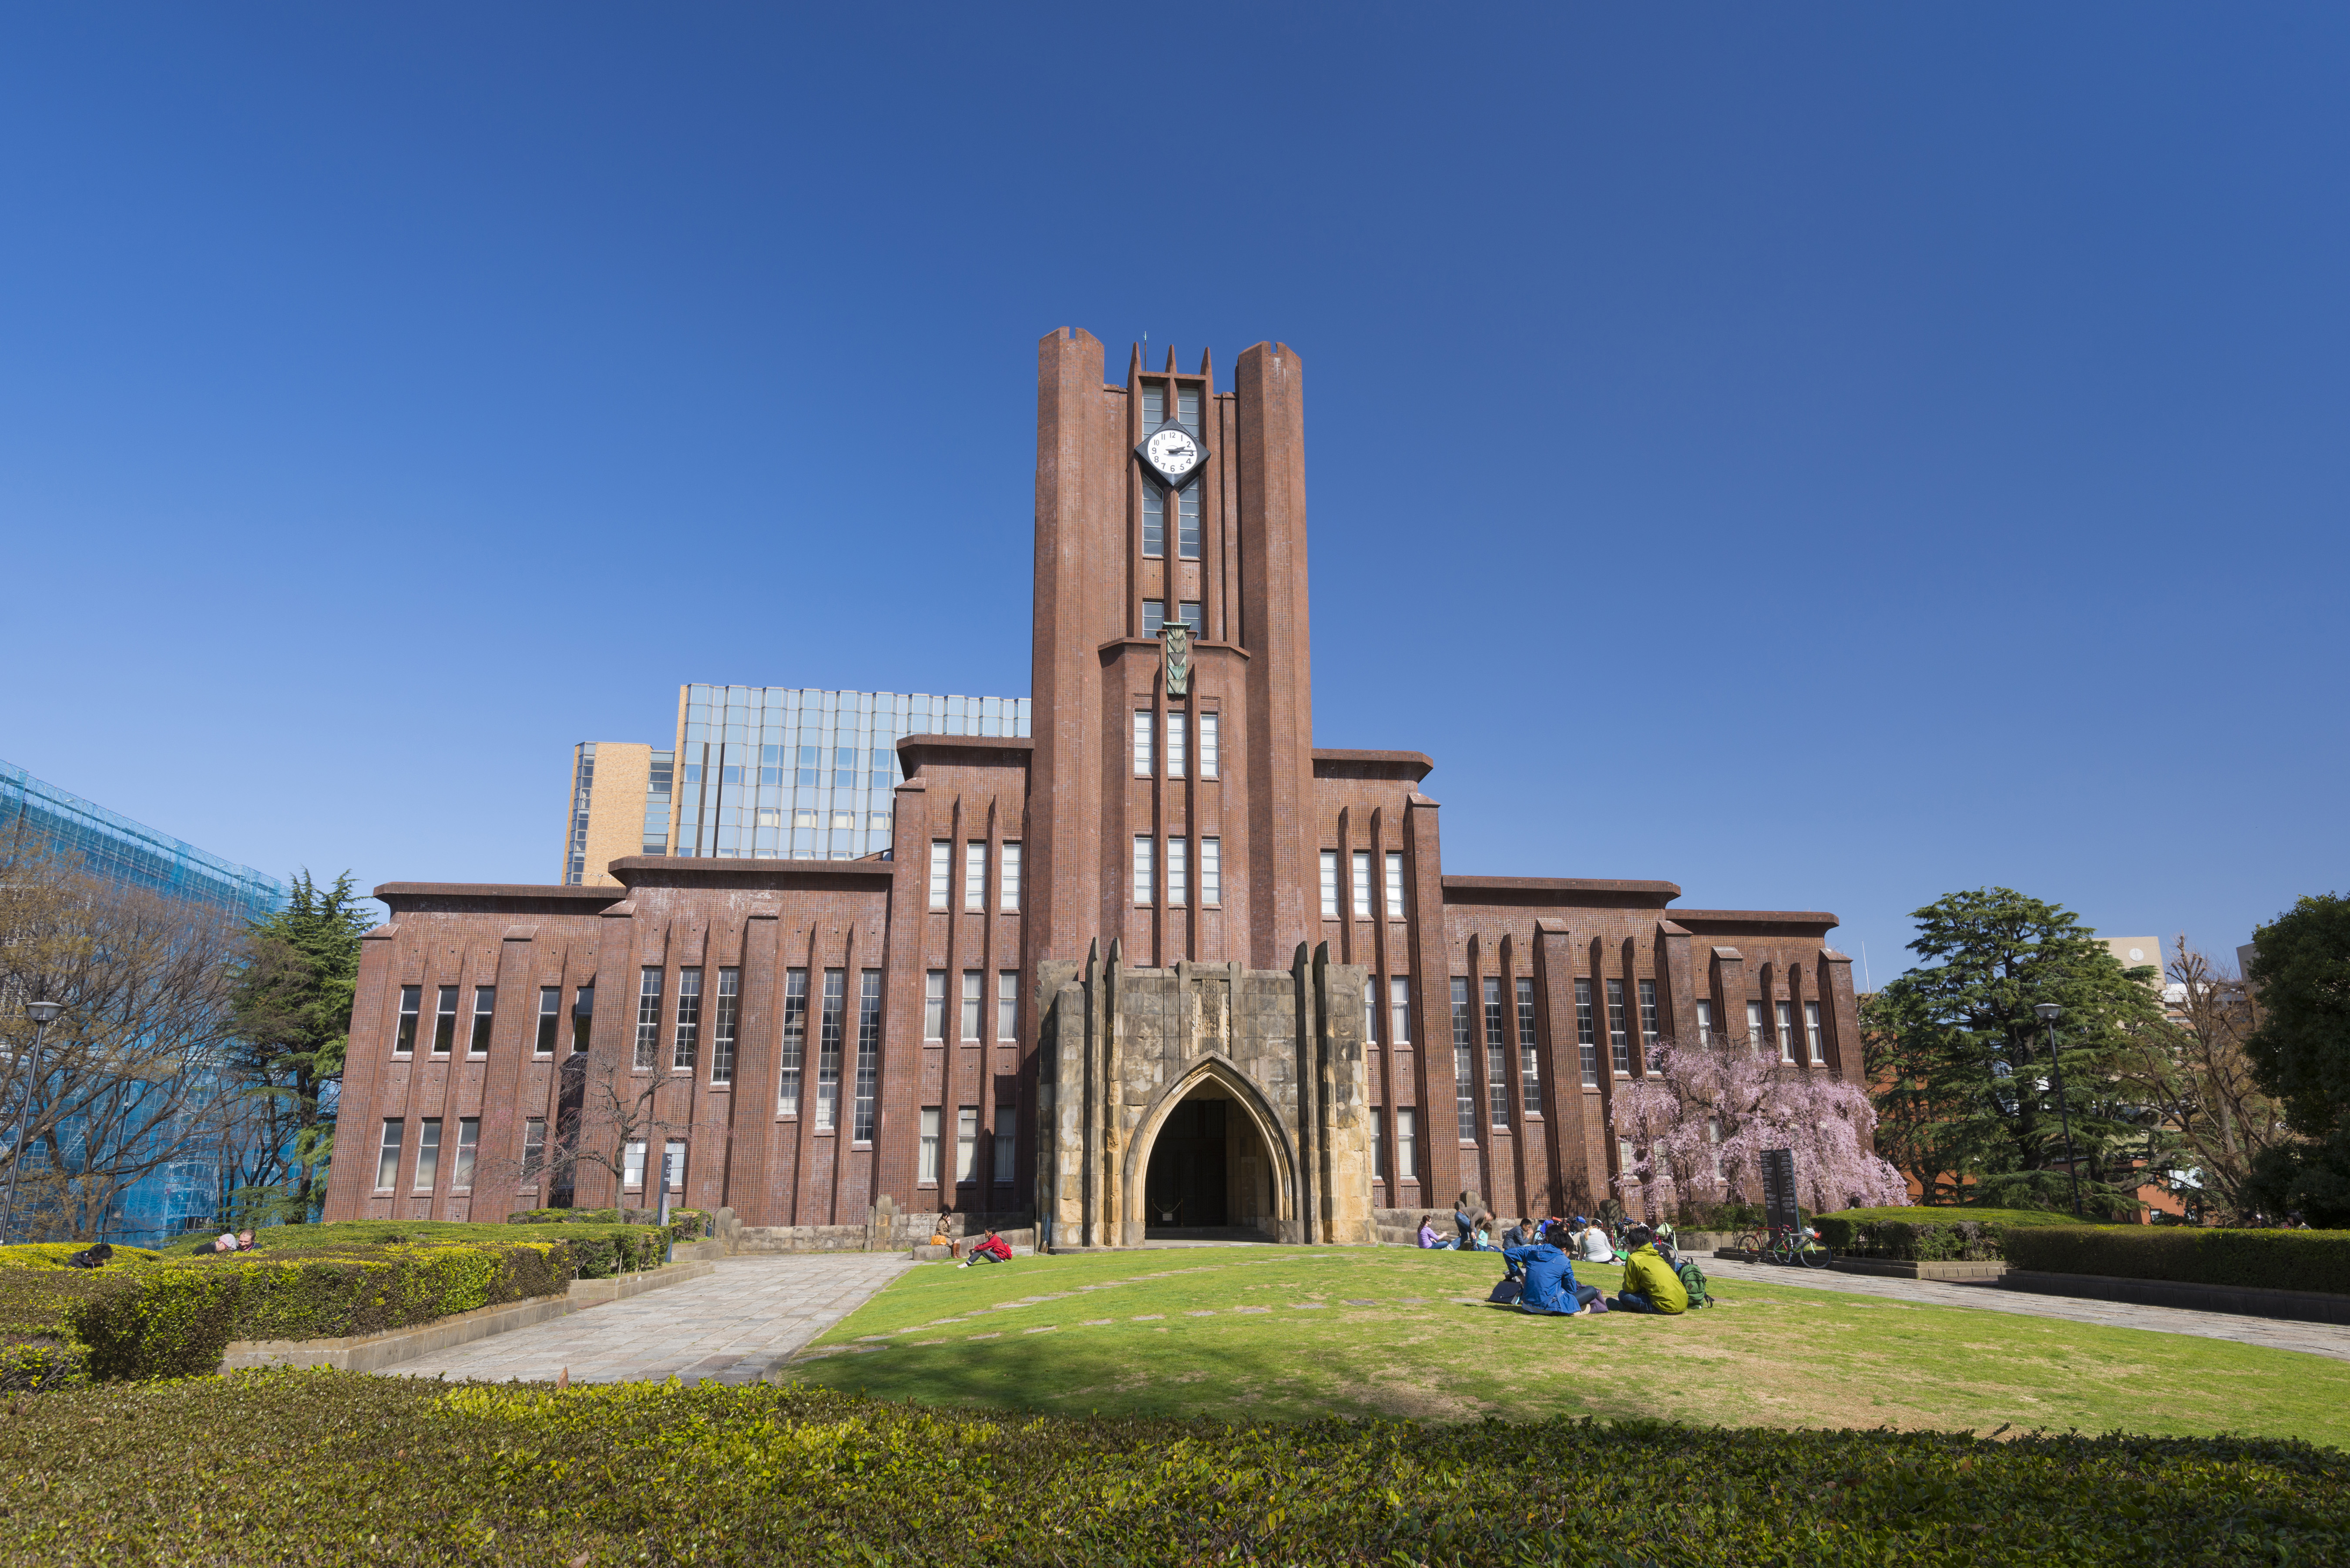 A view of the University of Tokyo